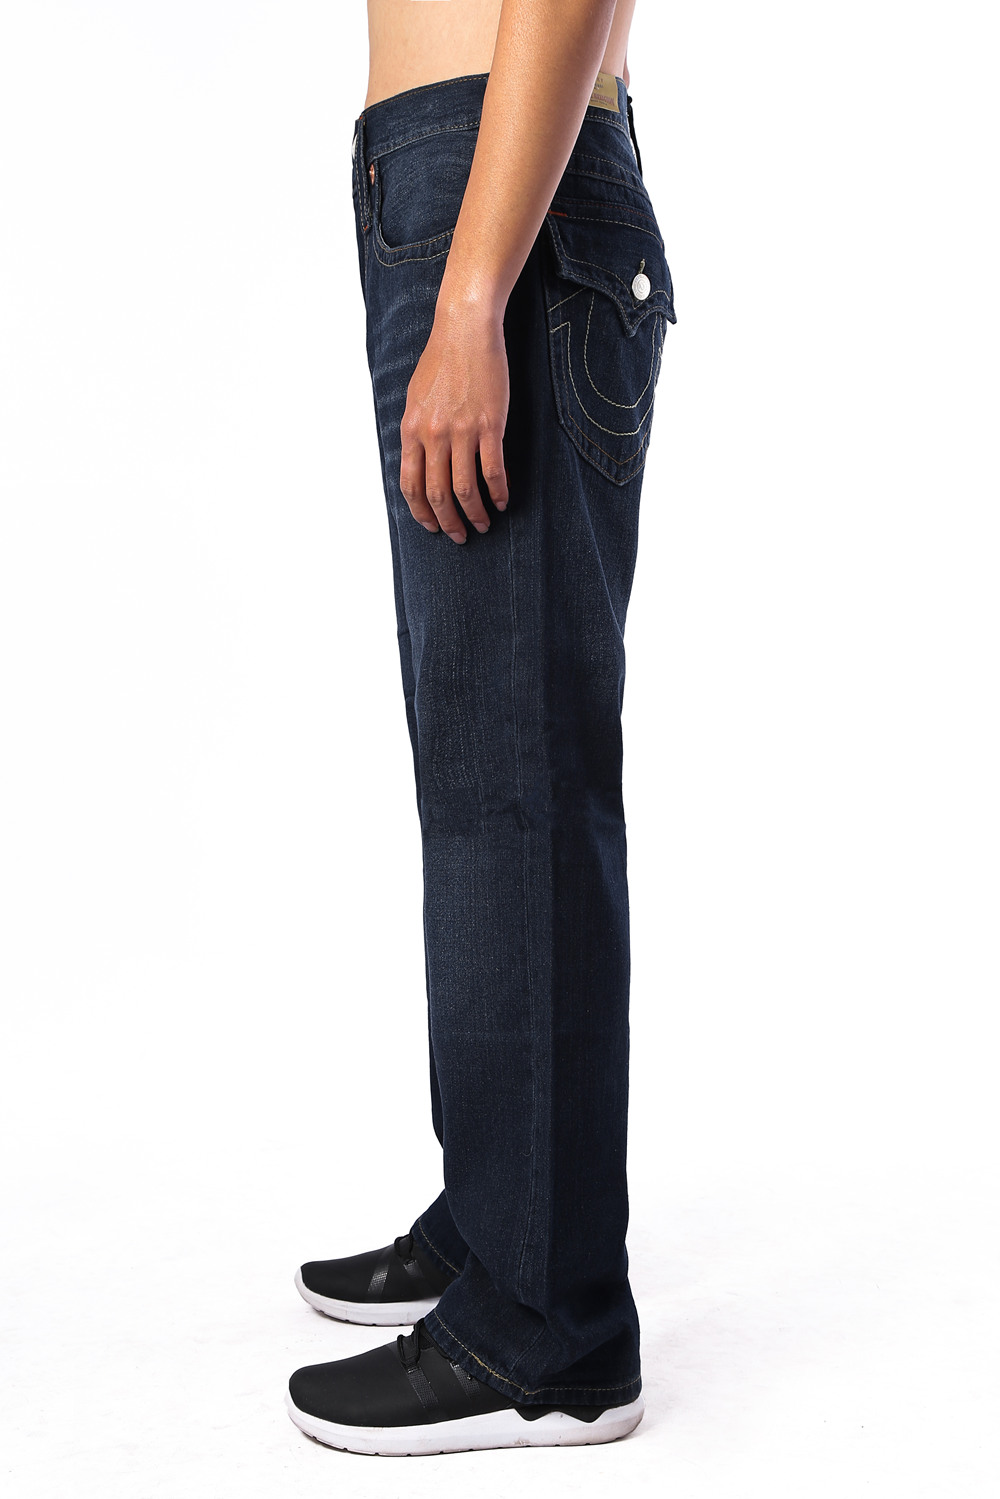 Navy True Religion Mens Jeans Side